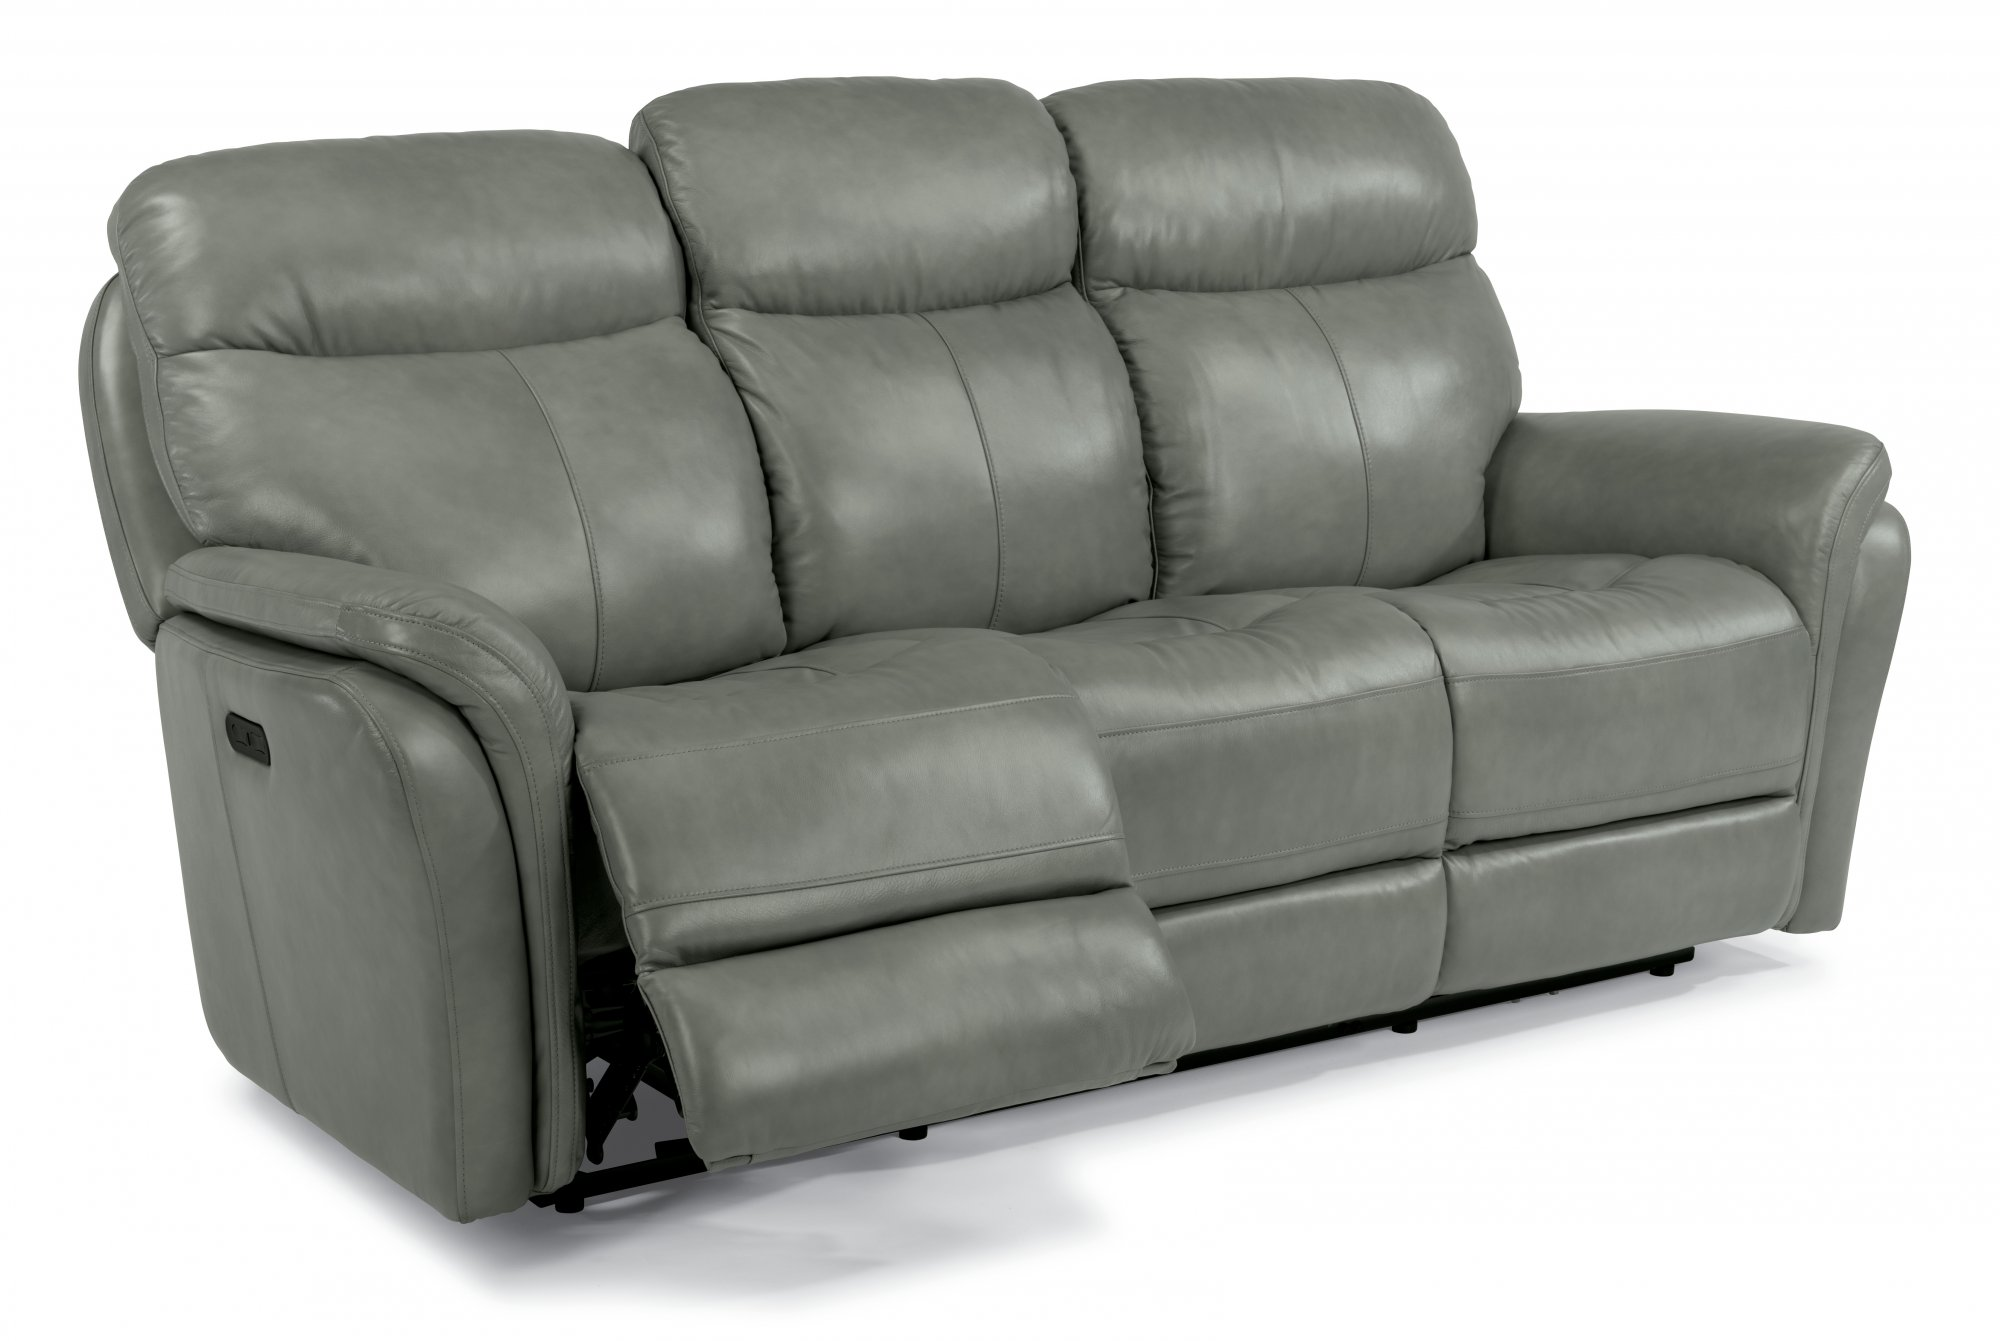 Leather Power Reclining Sofa with Power Headrests  sc 1 st  Flexsteel & Sofas and Loveseats | Reclining Sofas and Sleepers | Flexsteel islam-shia.org